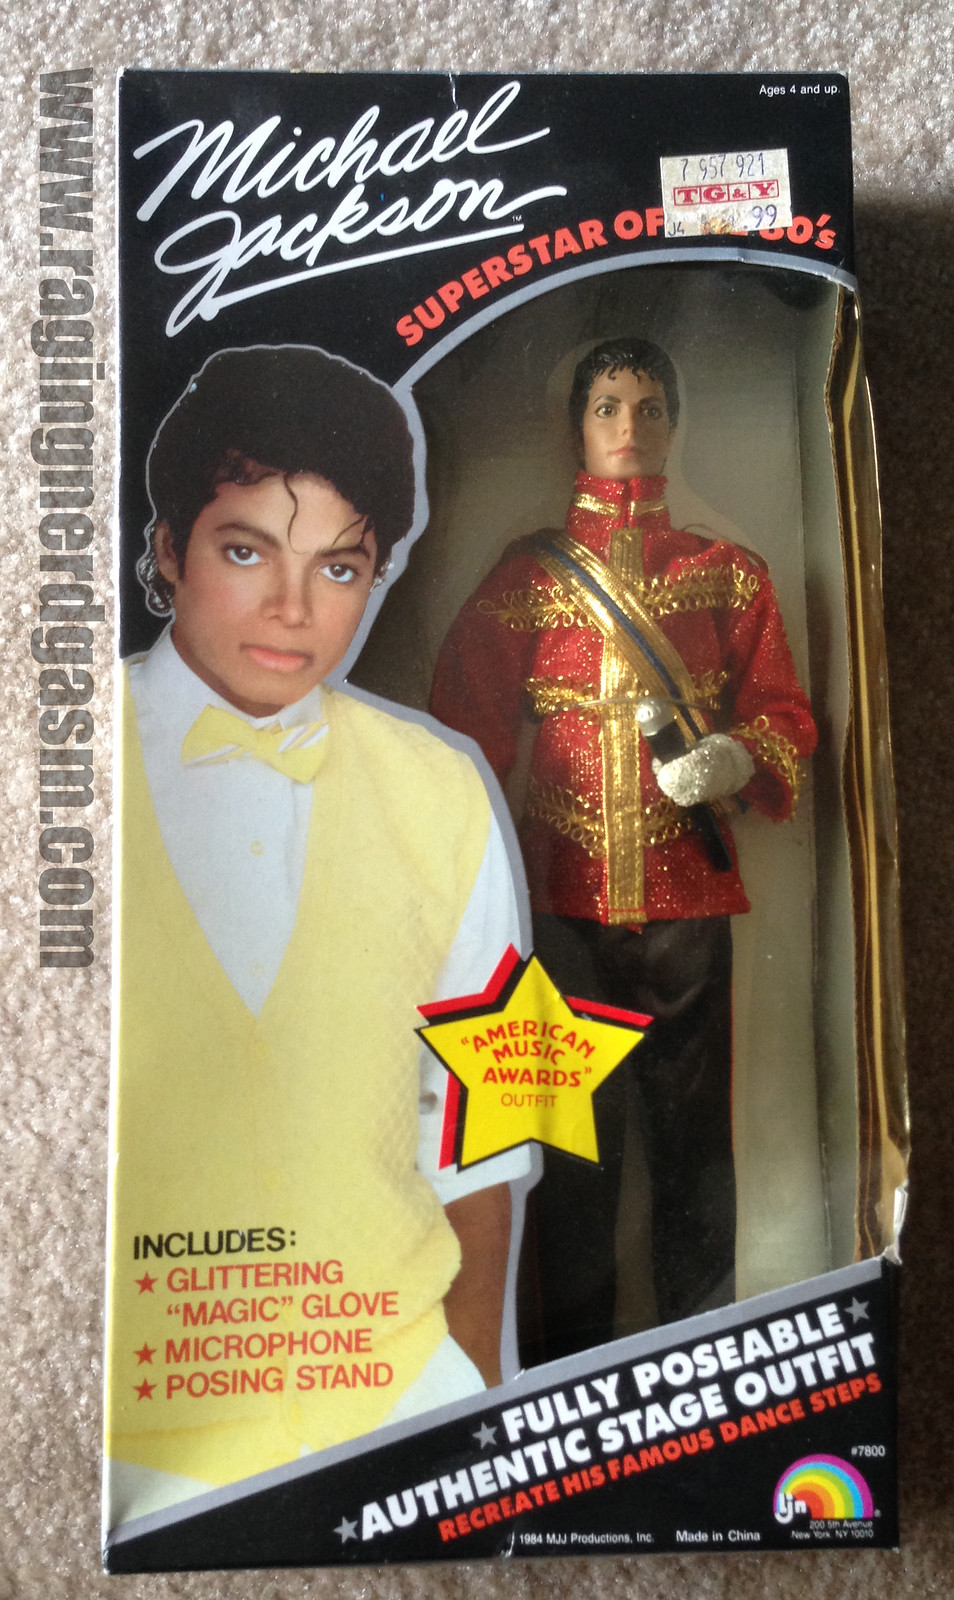 Michel Jackson Superstars of the 1980's by LJN